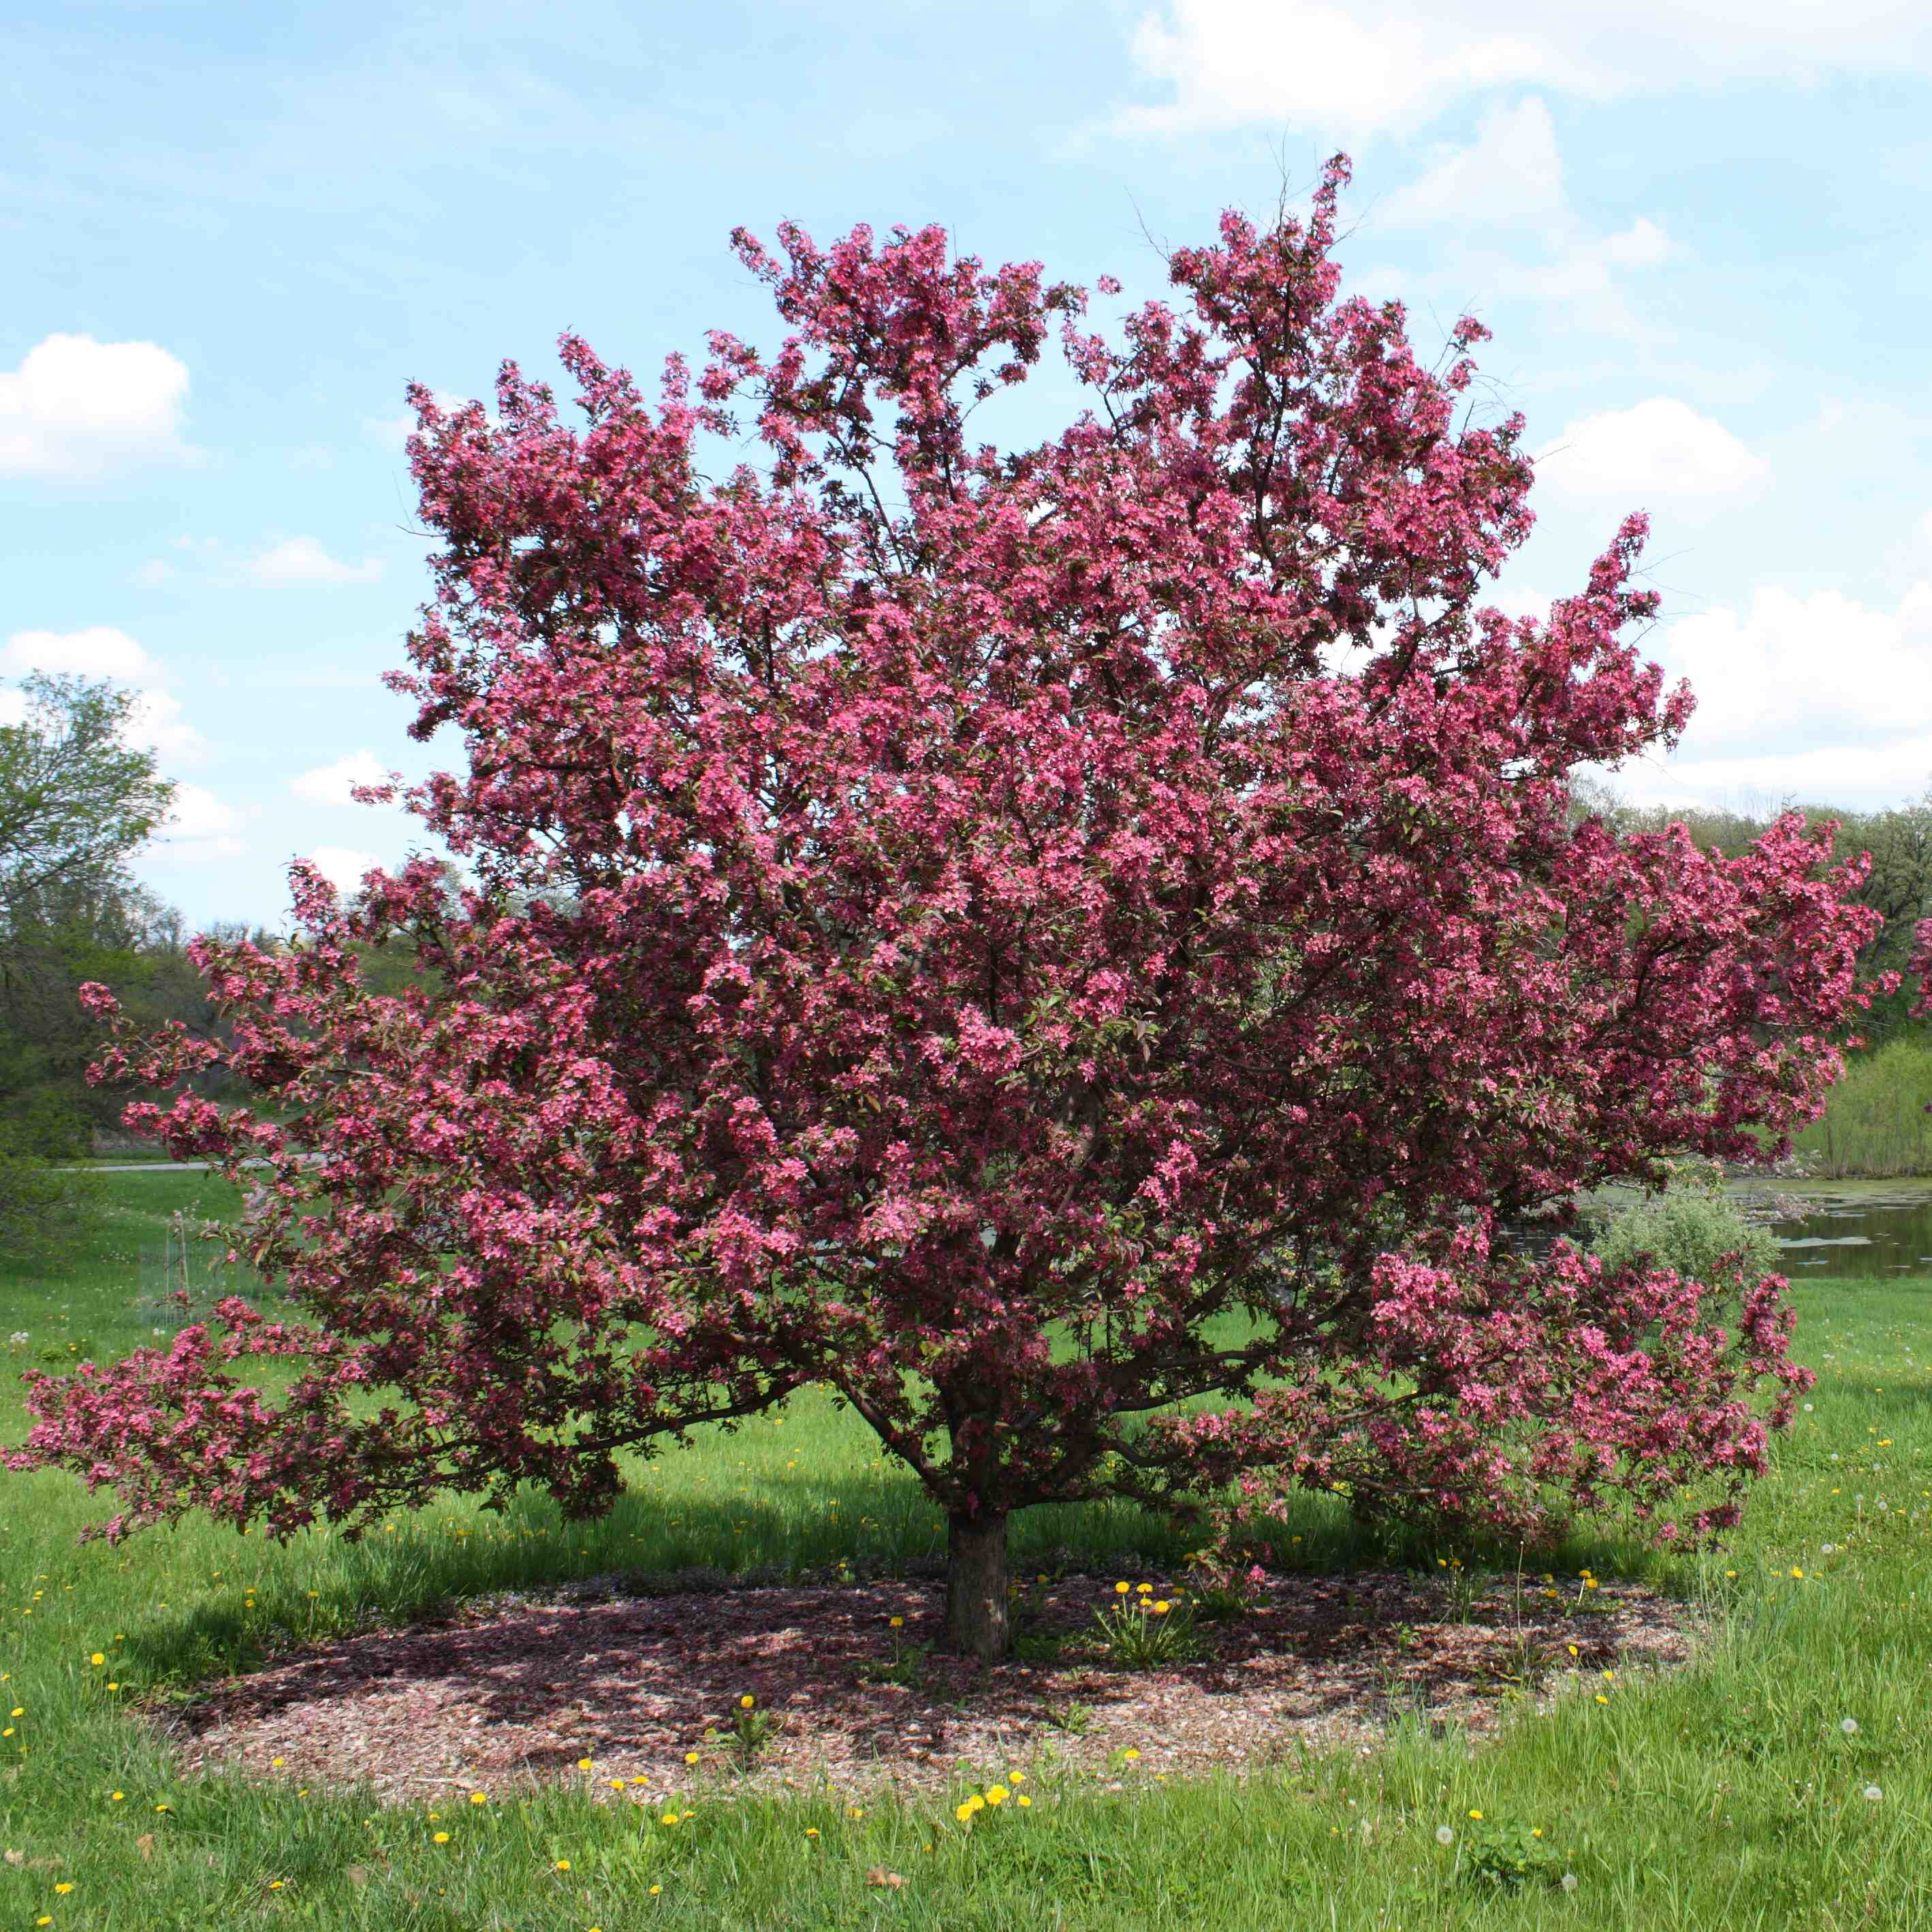 Plants with showy flowers like this crabapple will attract bees. Don't plant them if you're afraid of bees or allergic to their stings